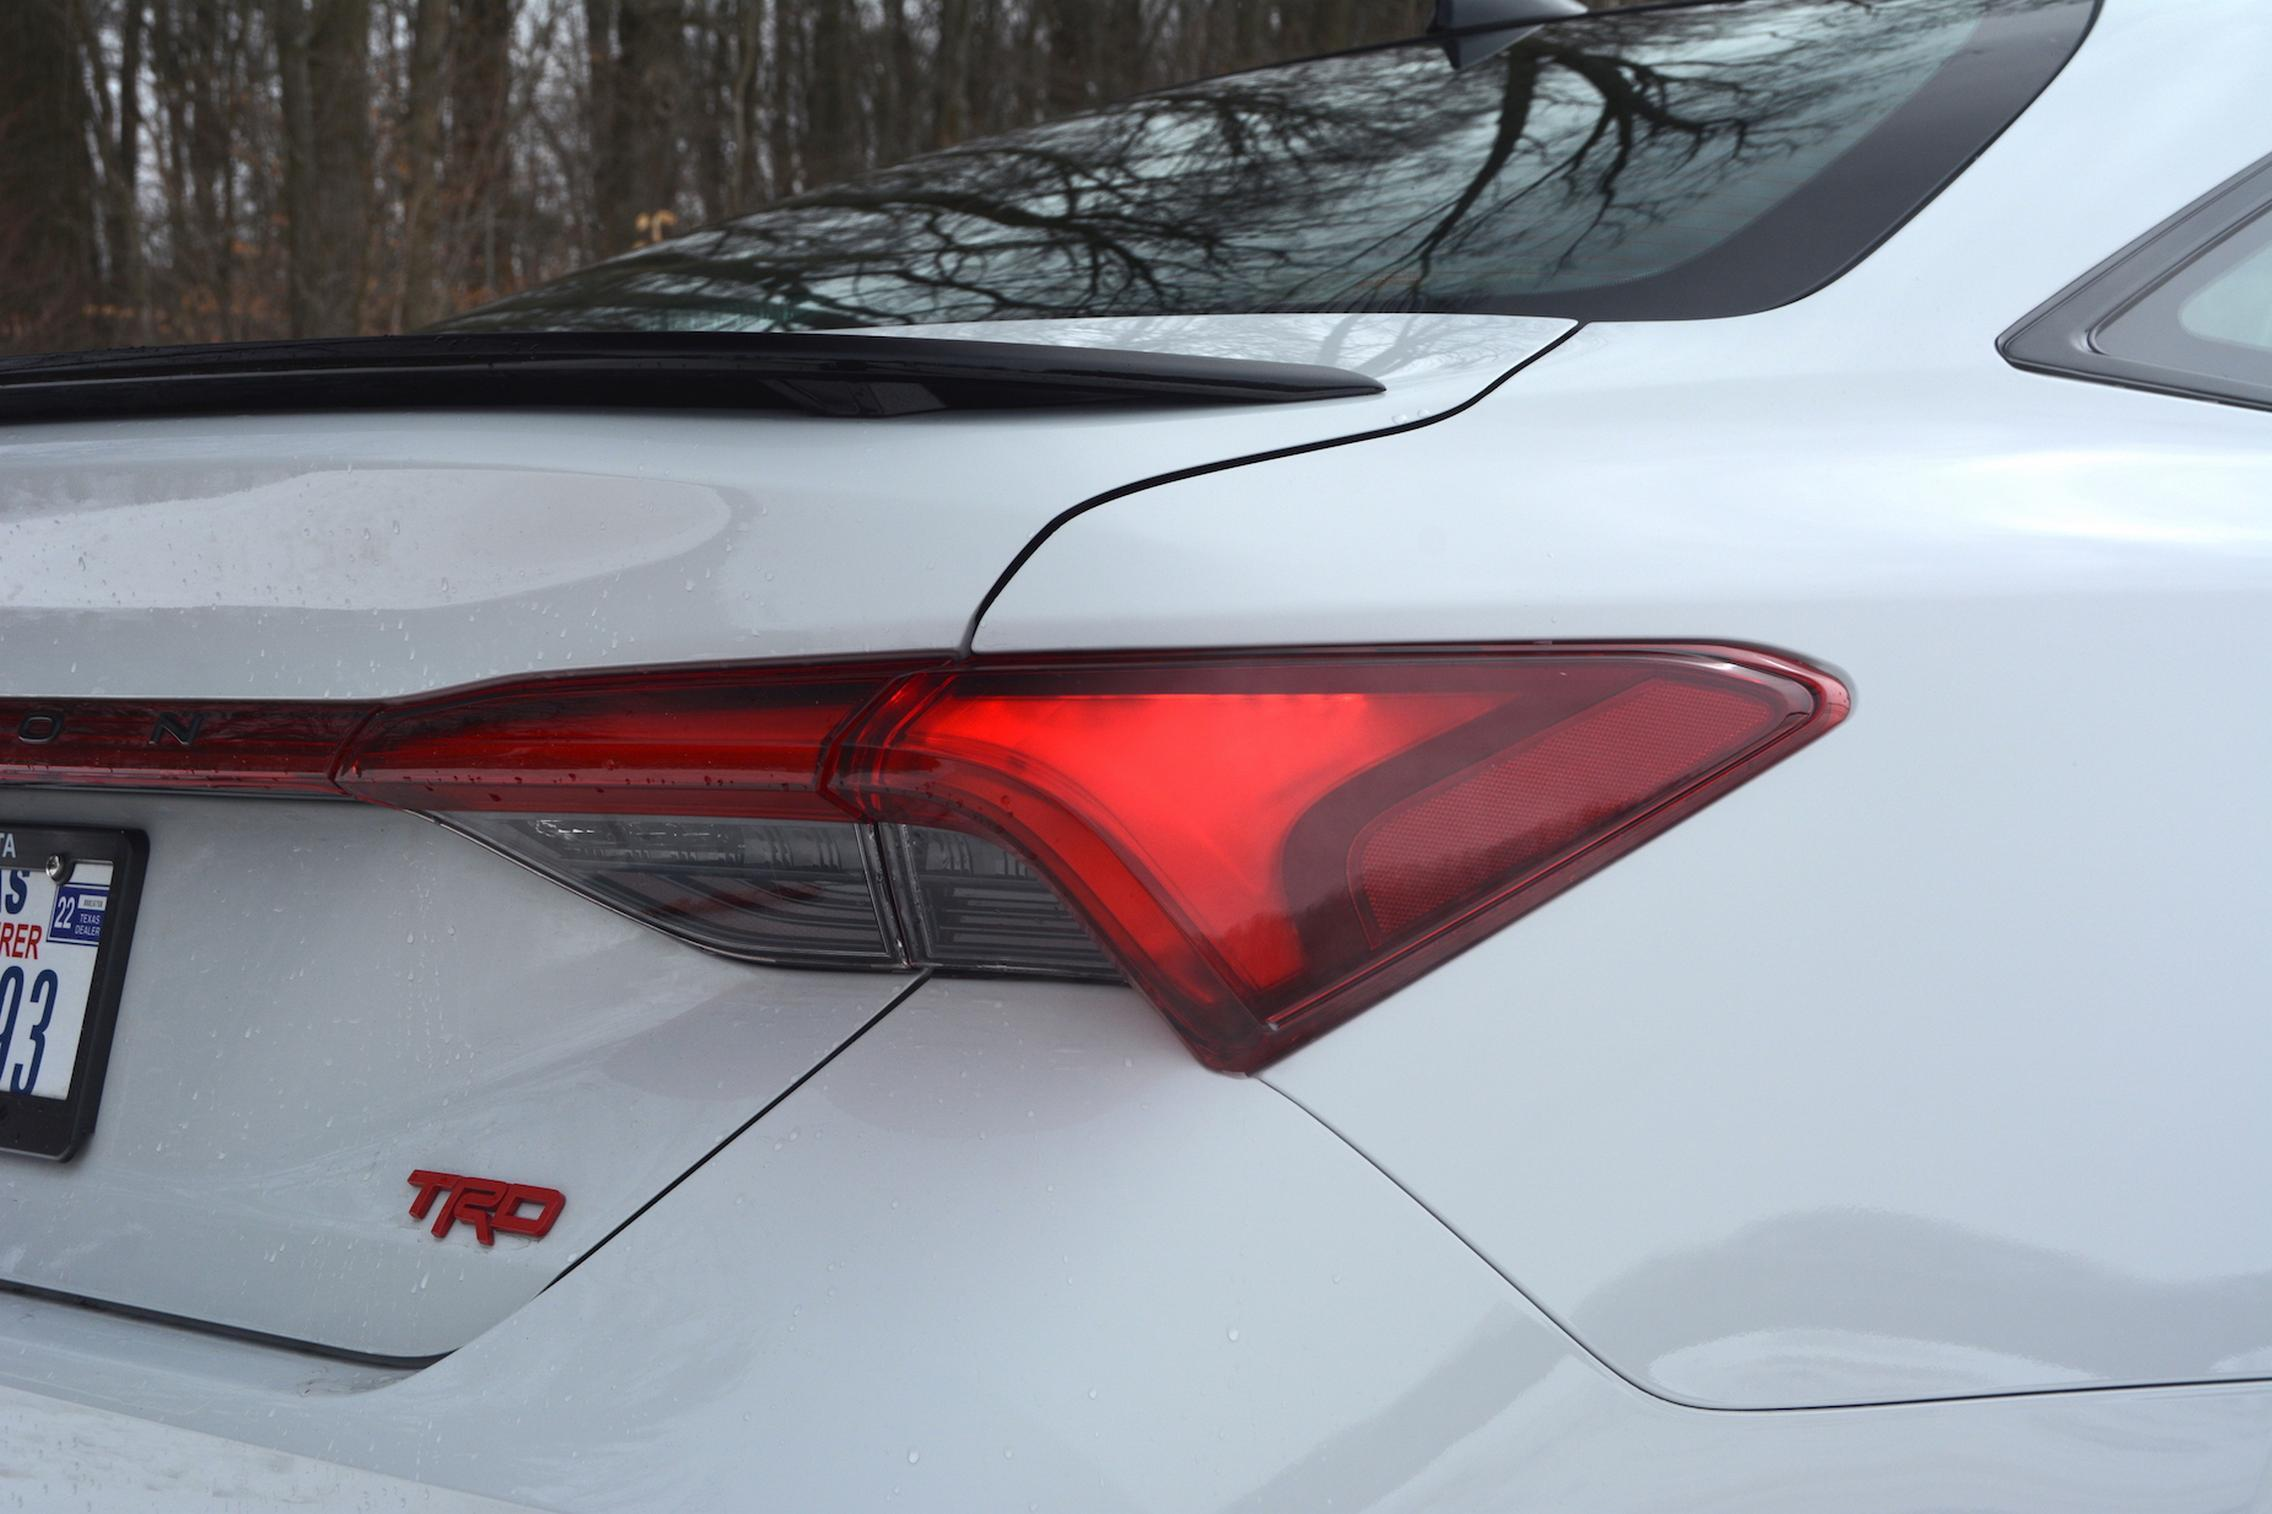 Toyota Avalon TRD taillight